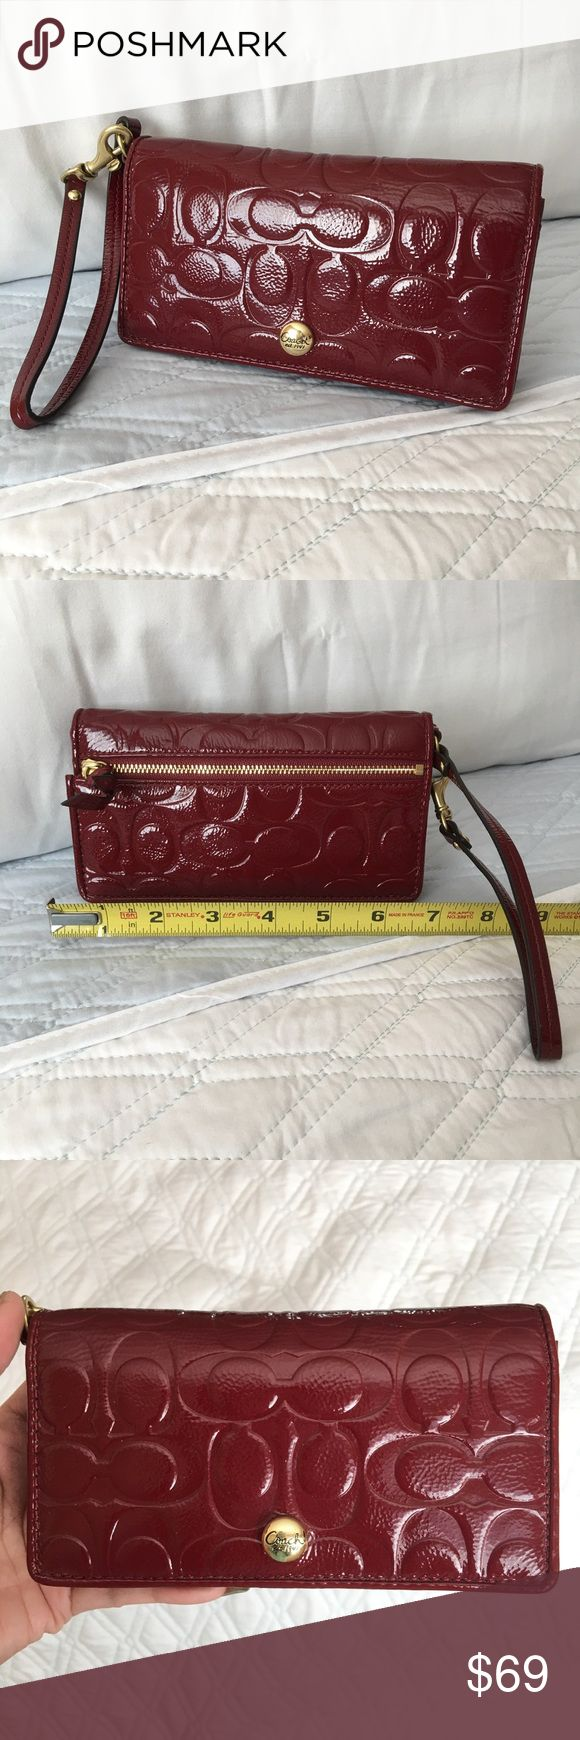 """Authentic Coach Clutch/Wallet 100 AUTHENTIC. Beautiful signature clutch/wallet from Coach. Very spacious. Approximate measurements: NOT EXACT 7"""" x 3 3/4"""" x 1"""" w/ lots of compartments. Used, w/ marks (especially the interior) scratches, and in very good condition. NO TRADE ❌ Coach Bags Clutches & Wristlets"""